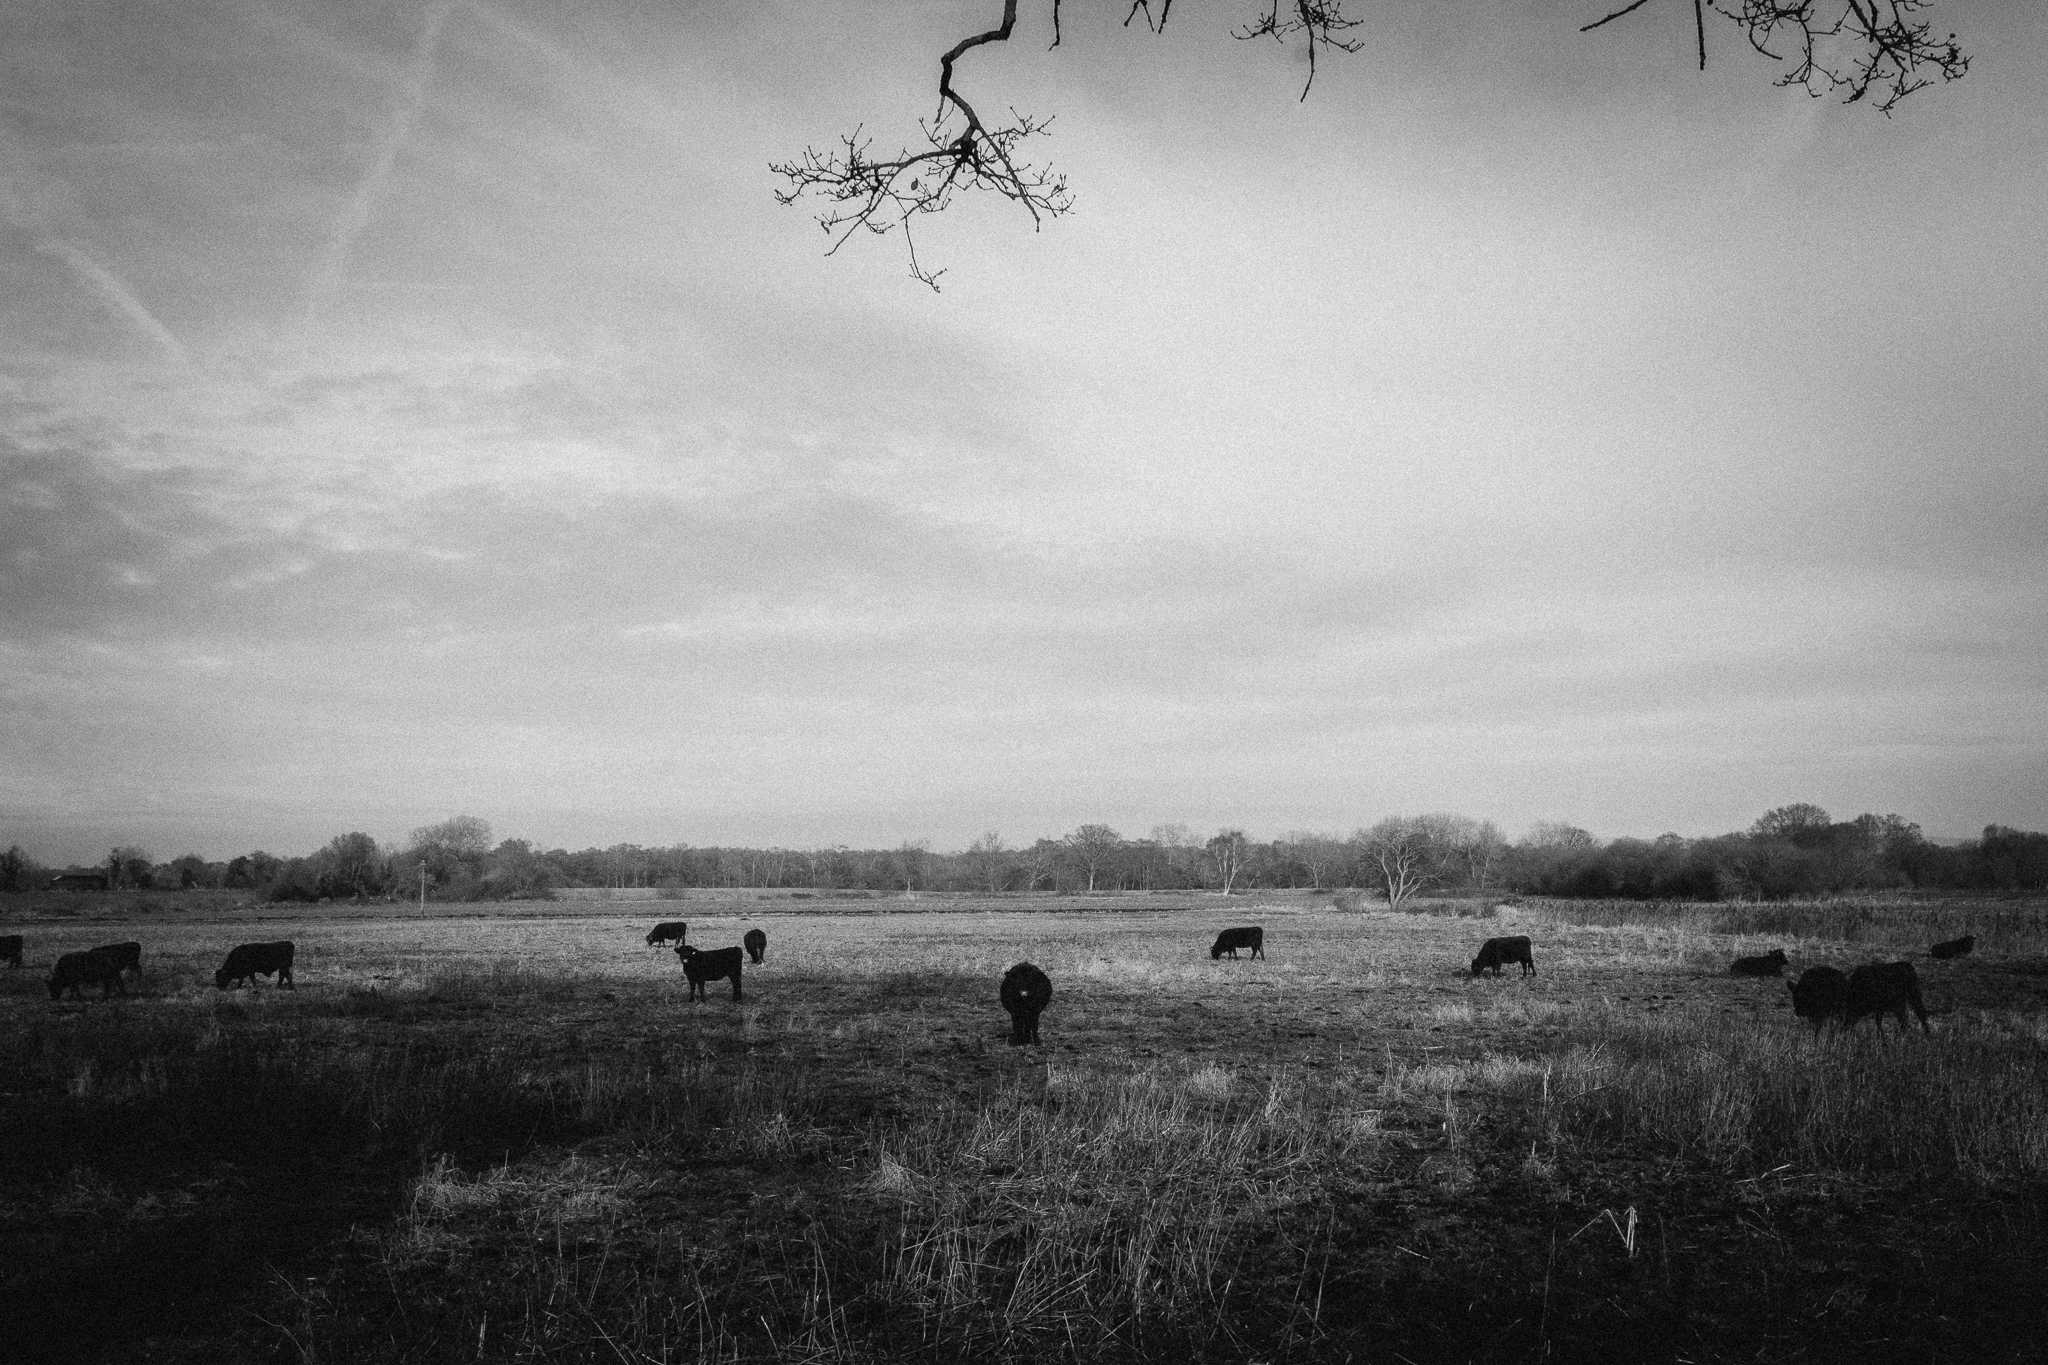 cow-wire2-bw (1 of 1).jpg